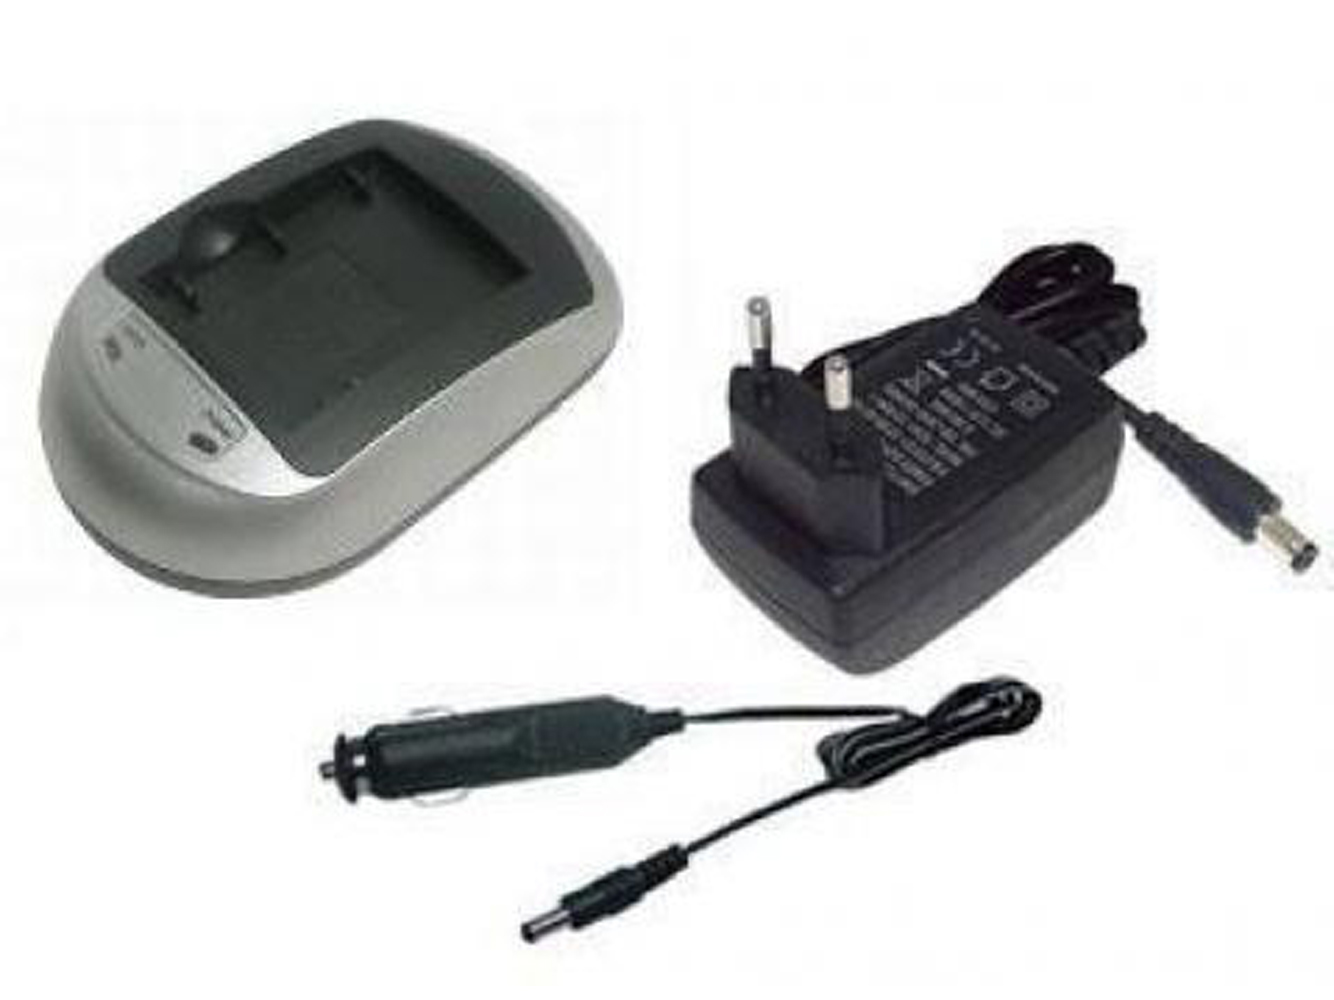 Battery Charger for QTEK G100